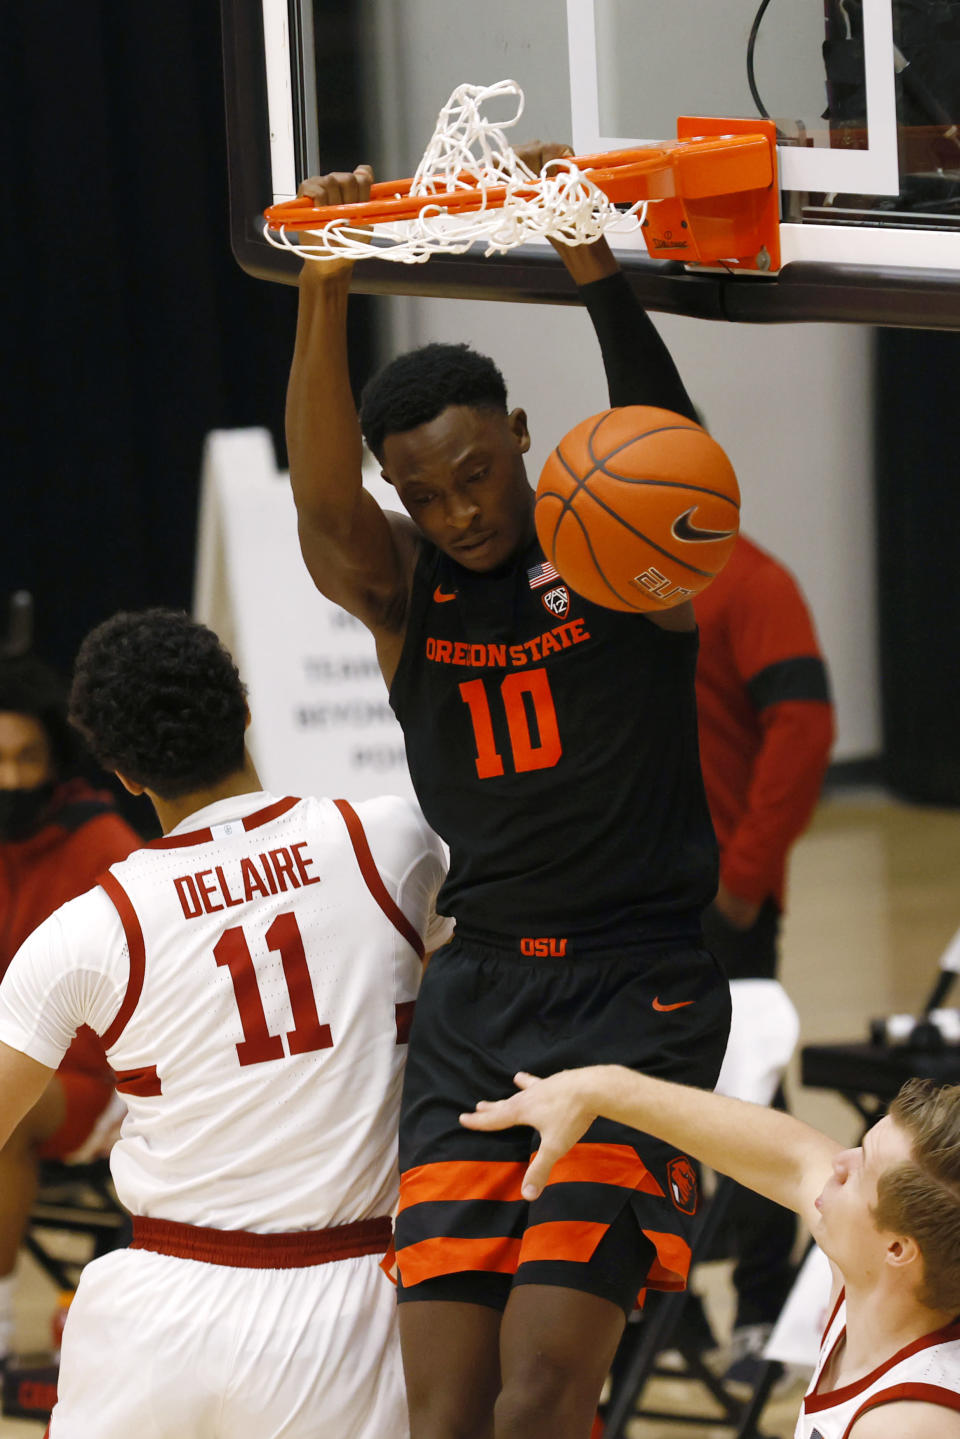 Oregon State forward Warith Alatishe (10) dunks in front ofStanford forward Jaiden Delaire (11) during the first half of an NCAA college basketball game in Stanford, Calif., Saturday, Feb. 27, 2021. (AP Photo/Josie Lepe)